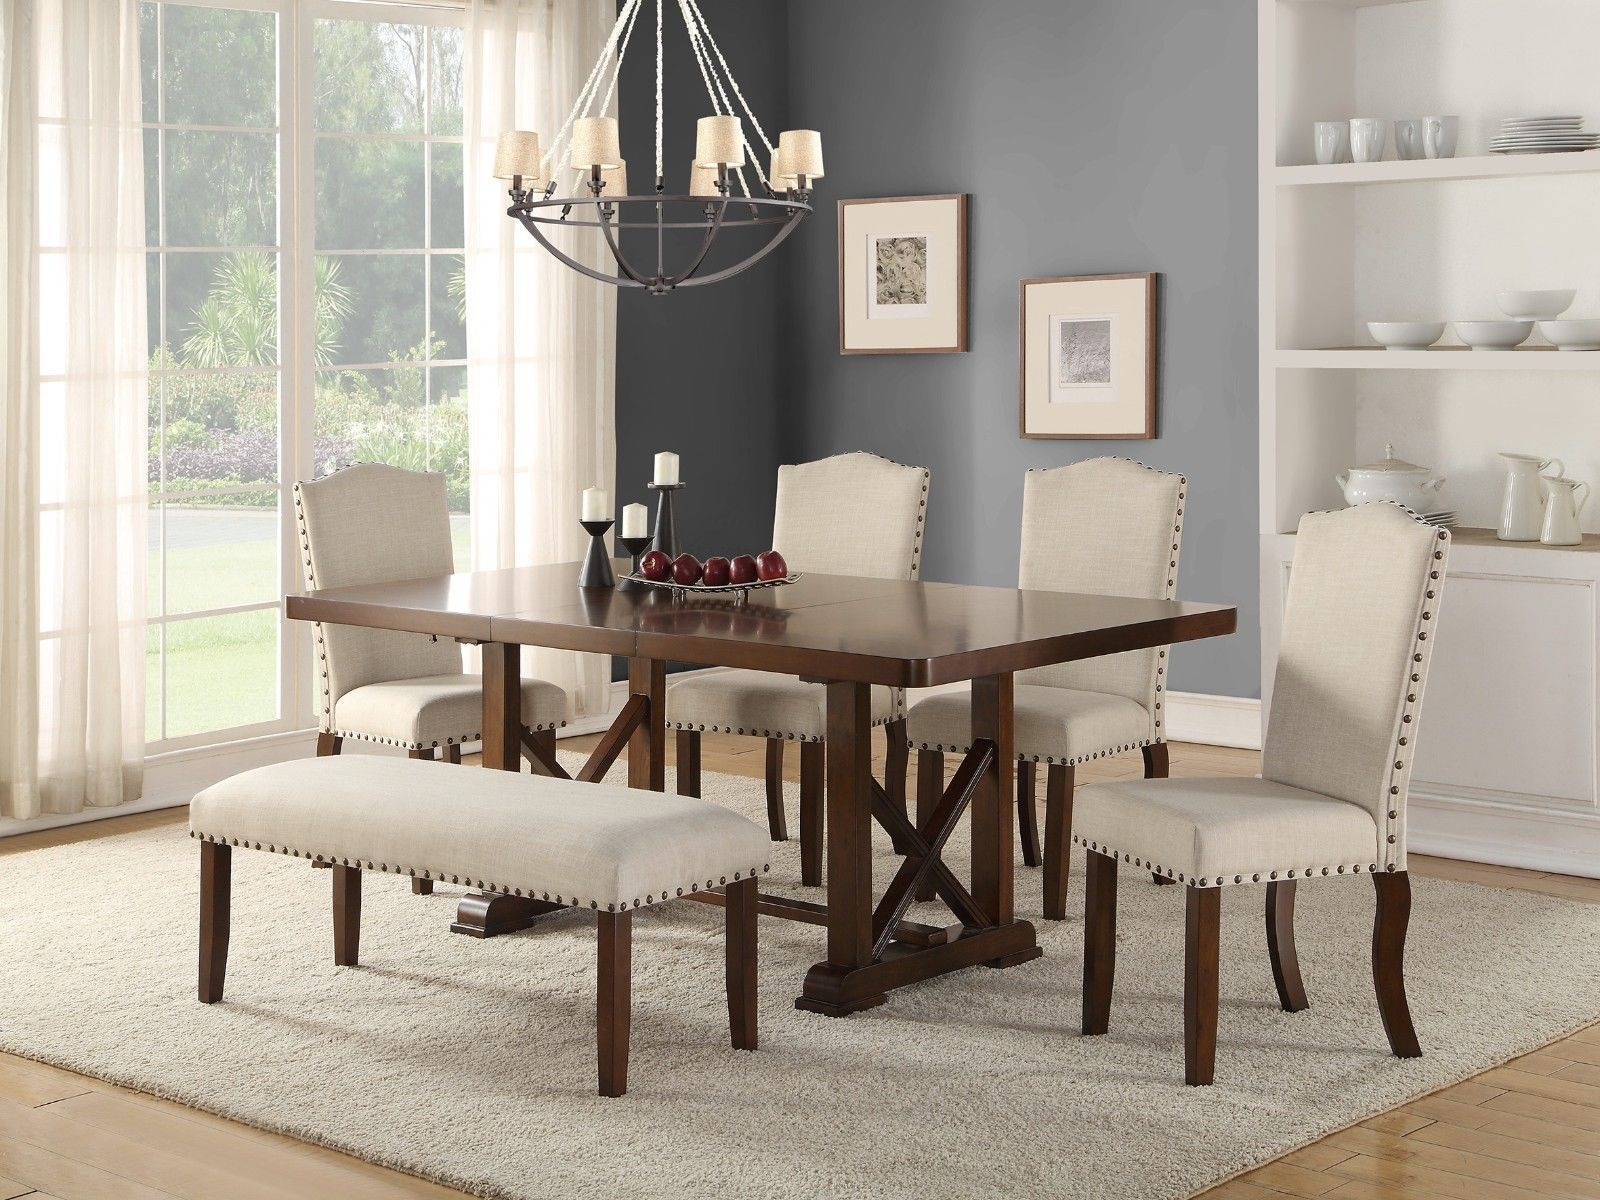 6pc Dining Set Table W Leaf Bench Faux Leather Cushion Chairs